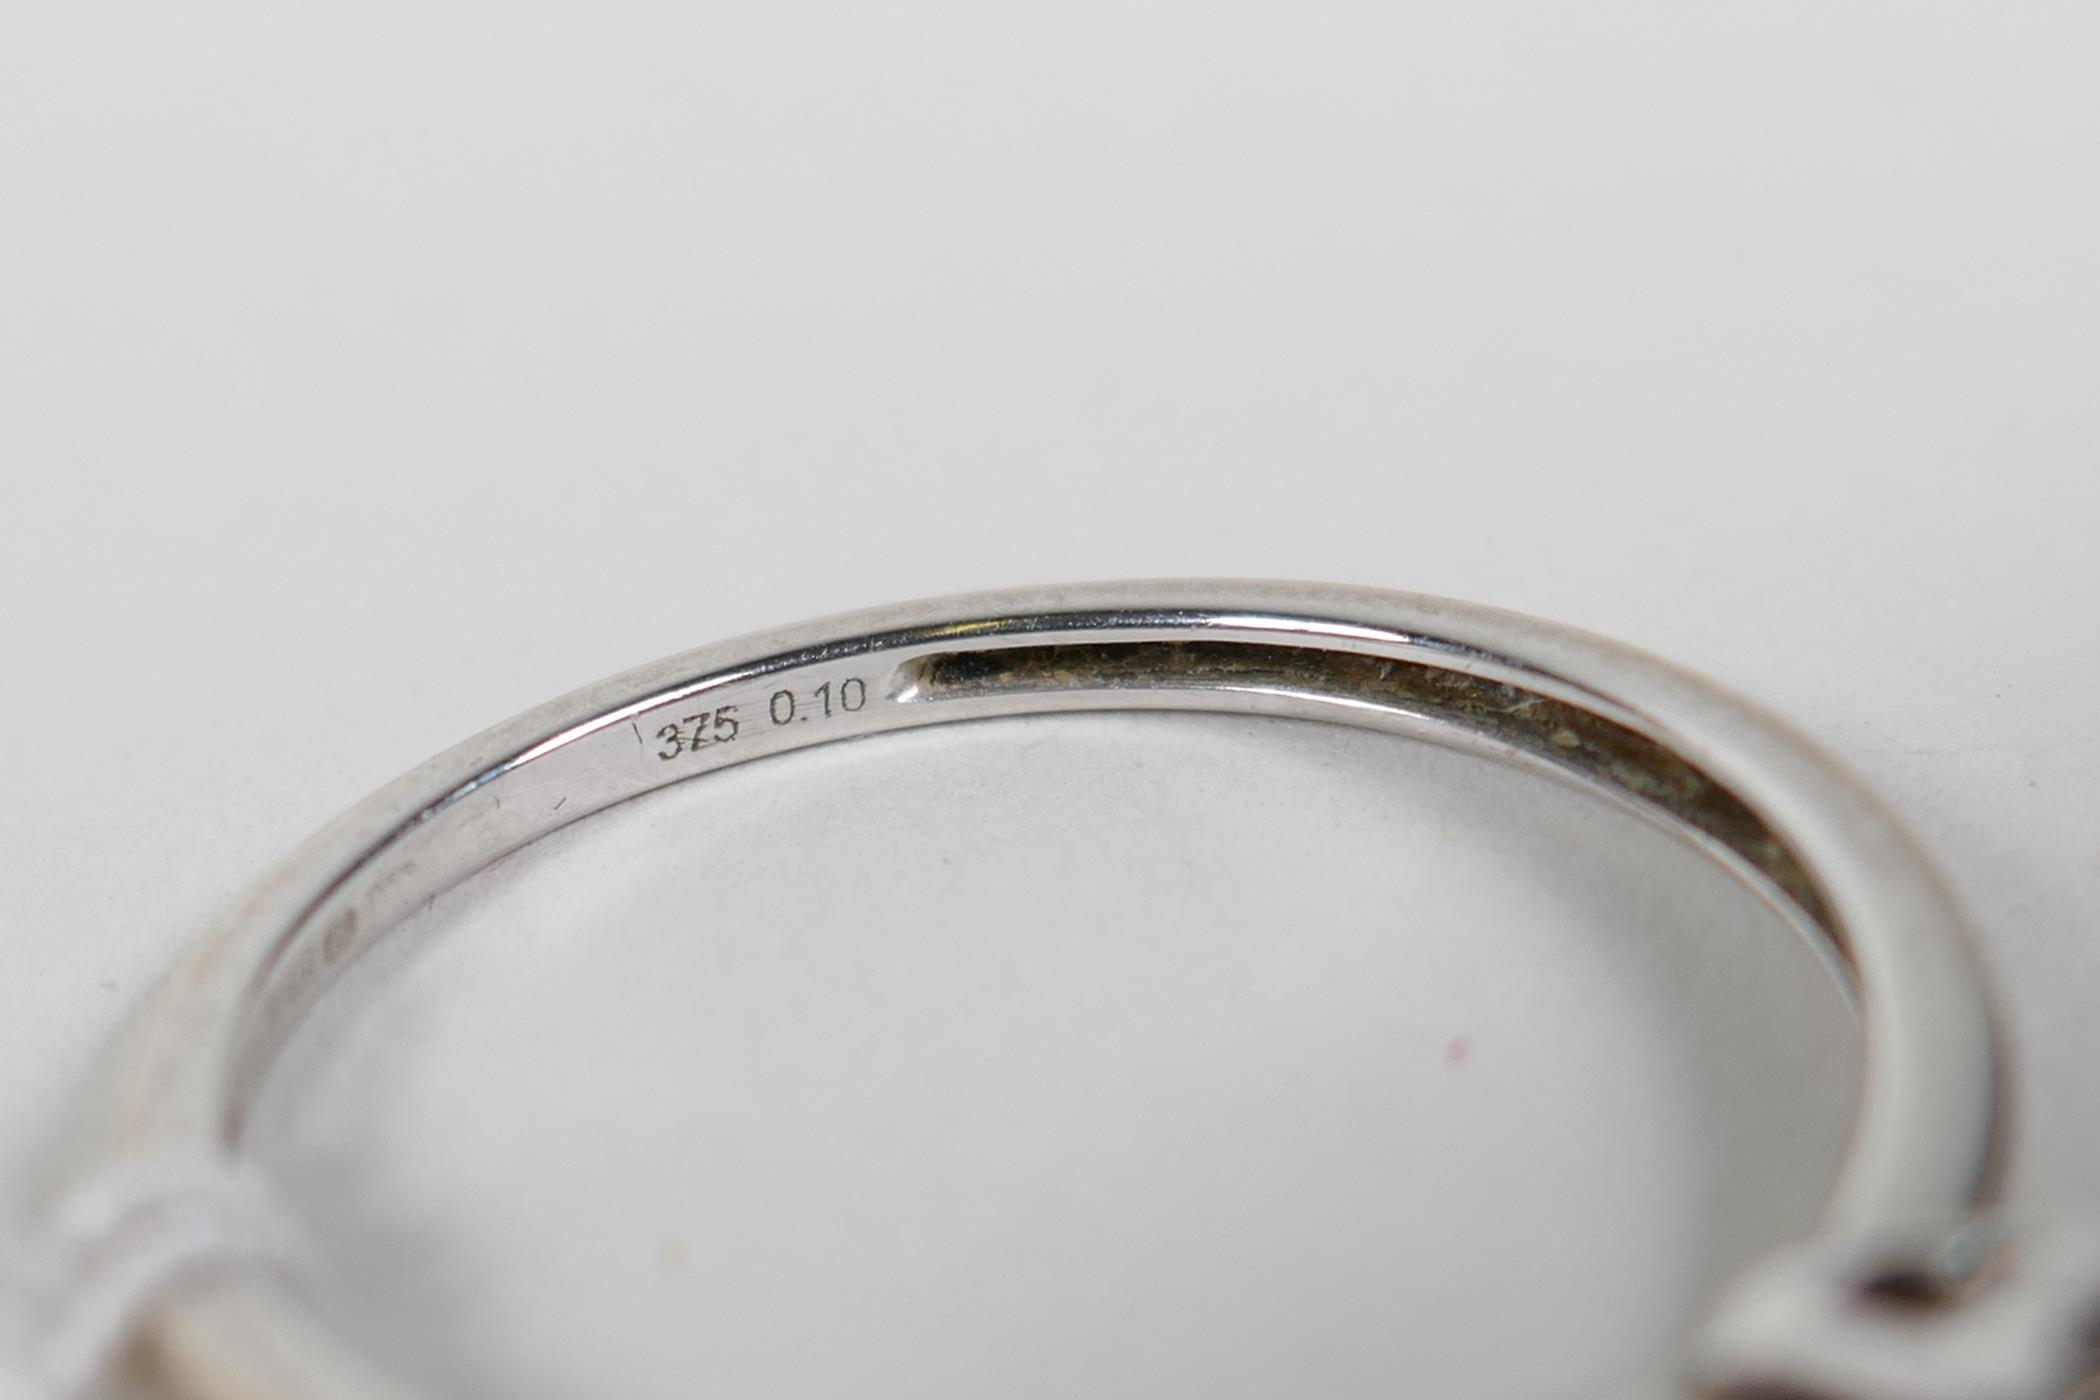 An 18ct white gold and diamond engagement ring, approximate size 'N' - Image 3 of 4